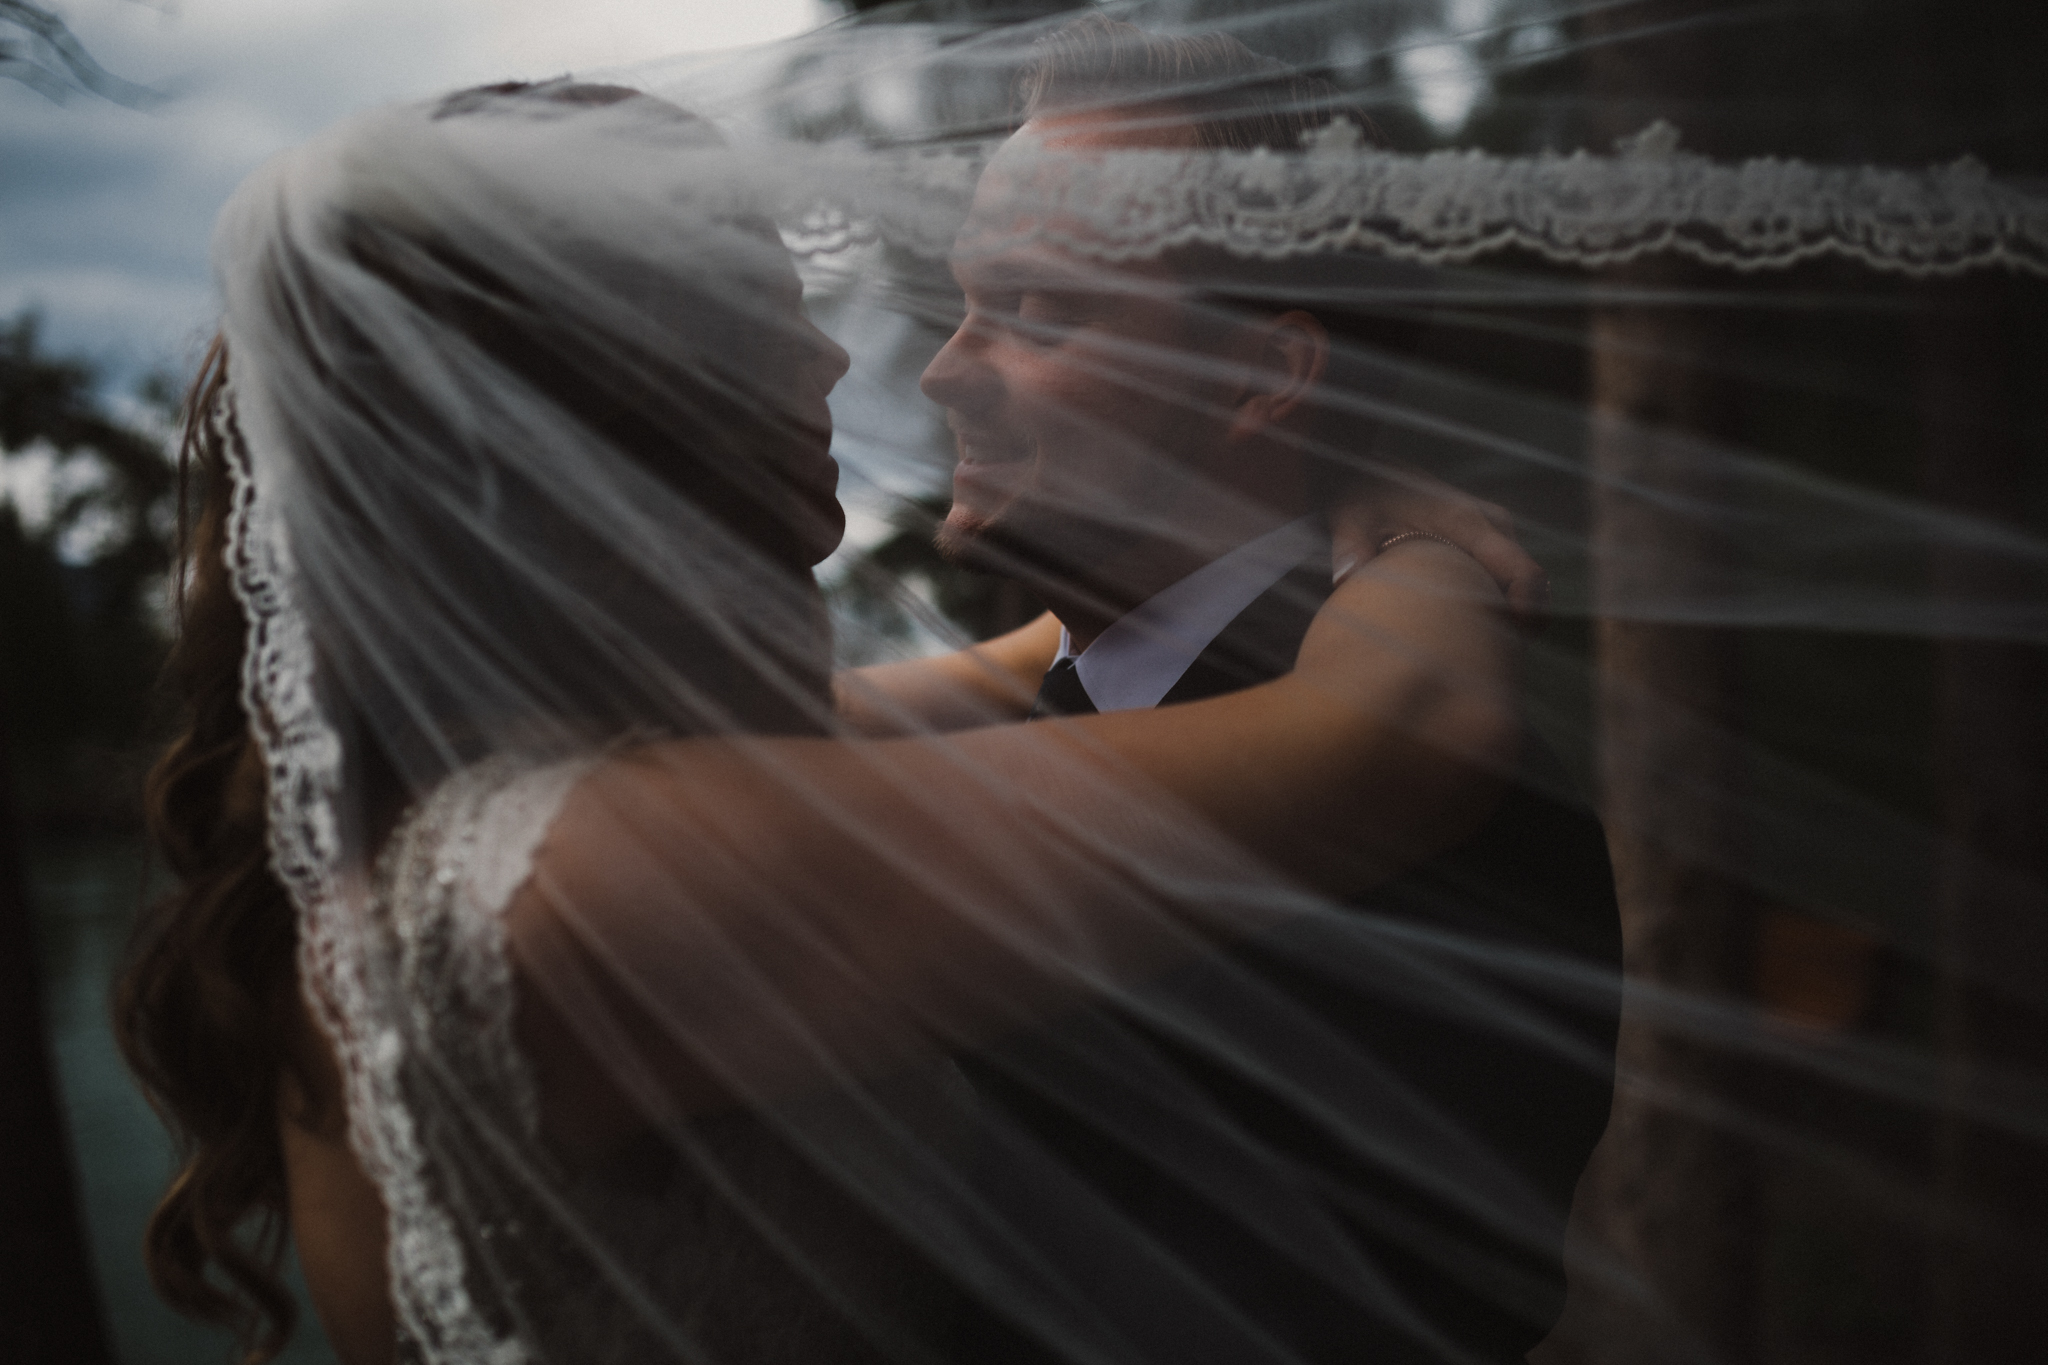 Bride and groom embrace underneath veil in moody portrait